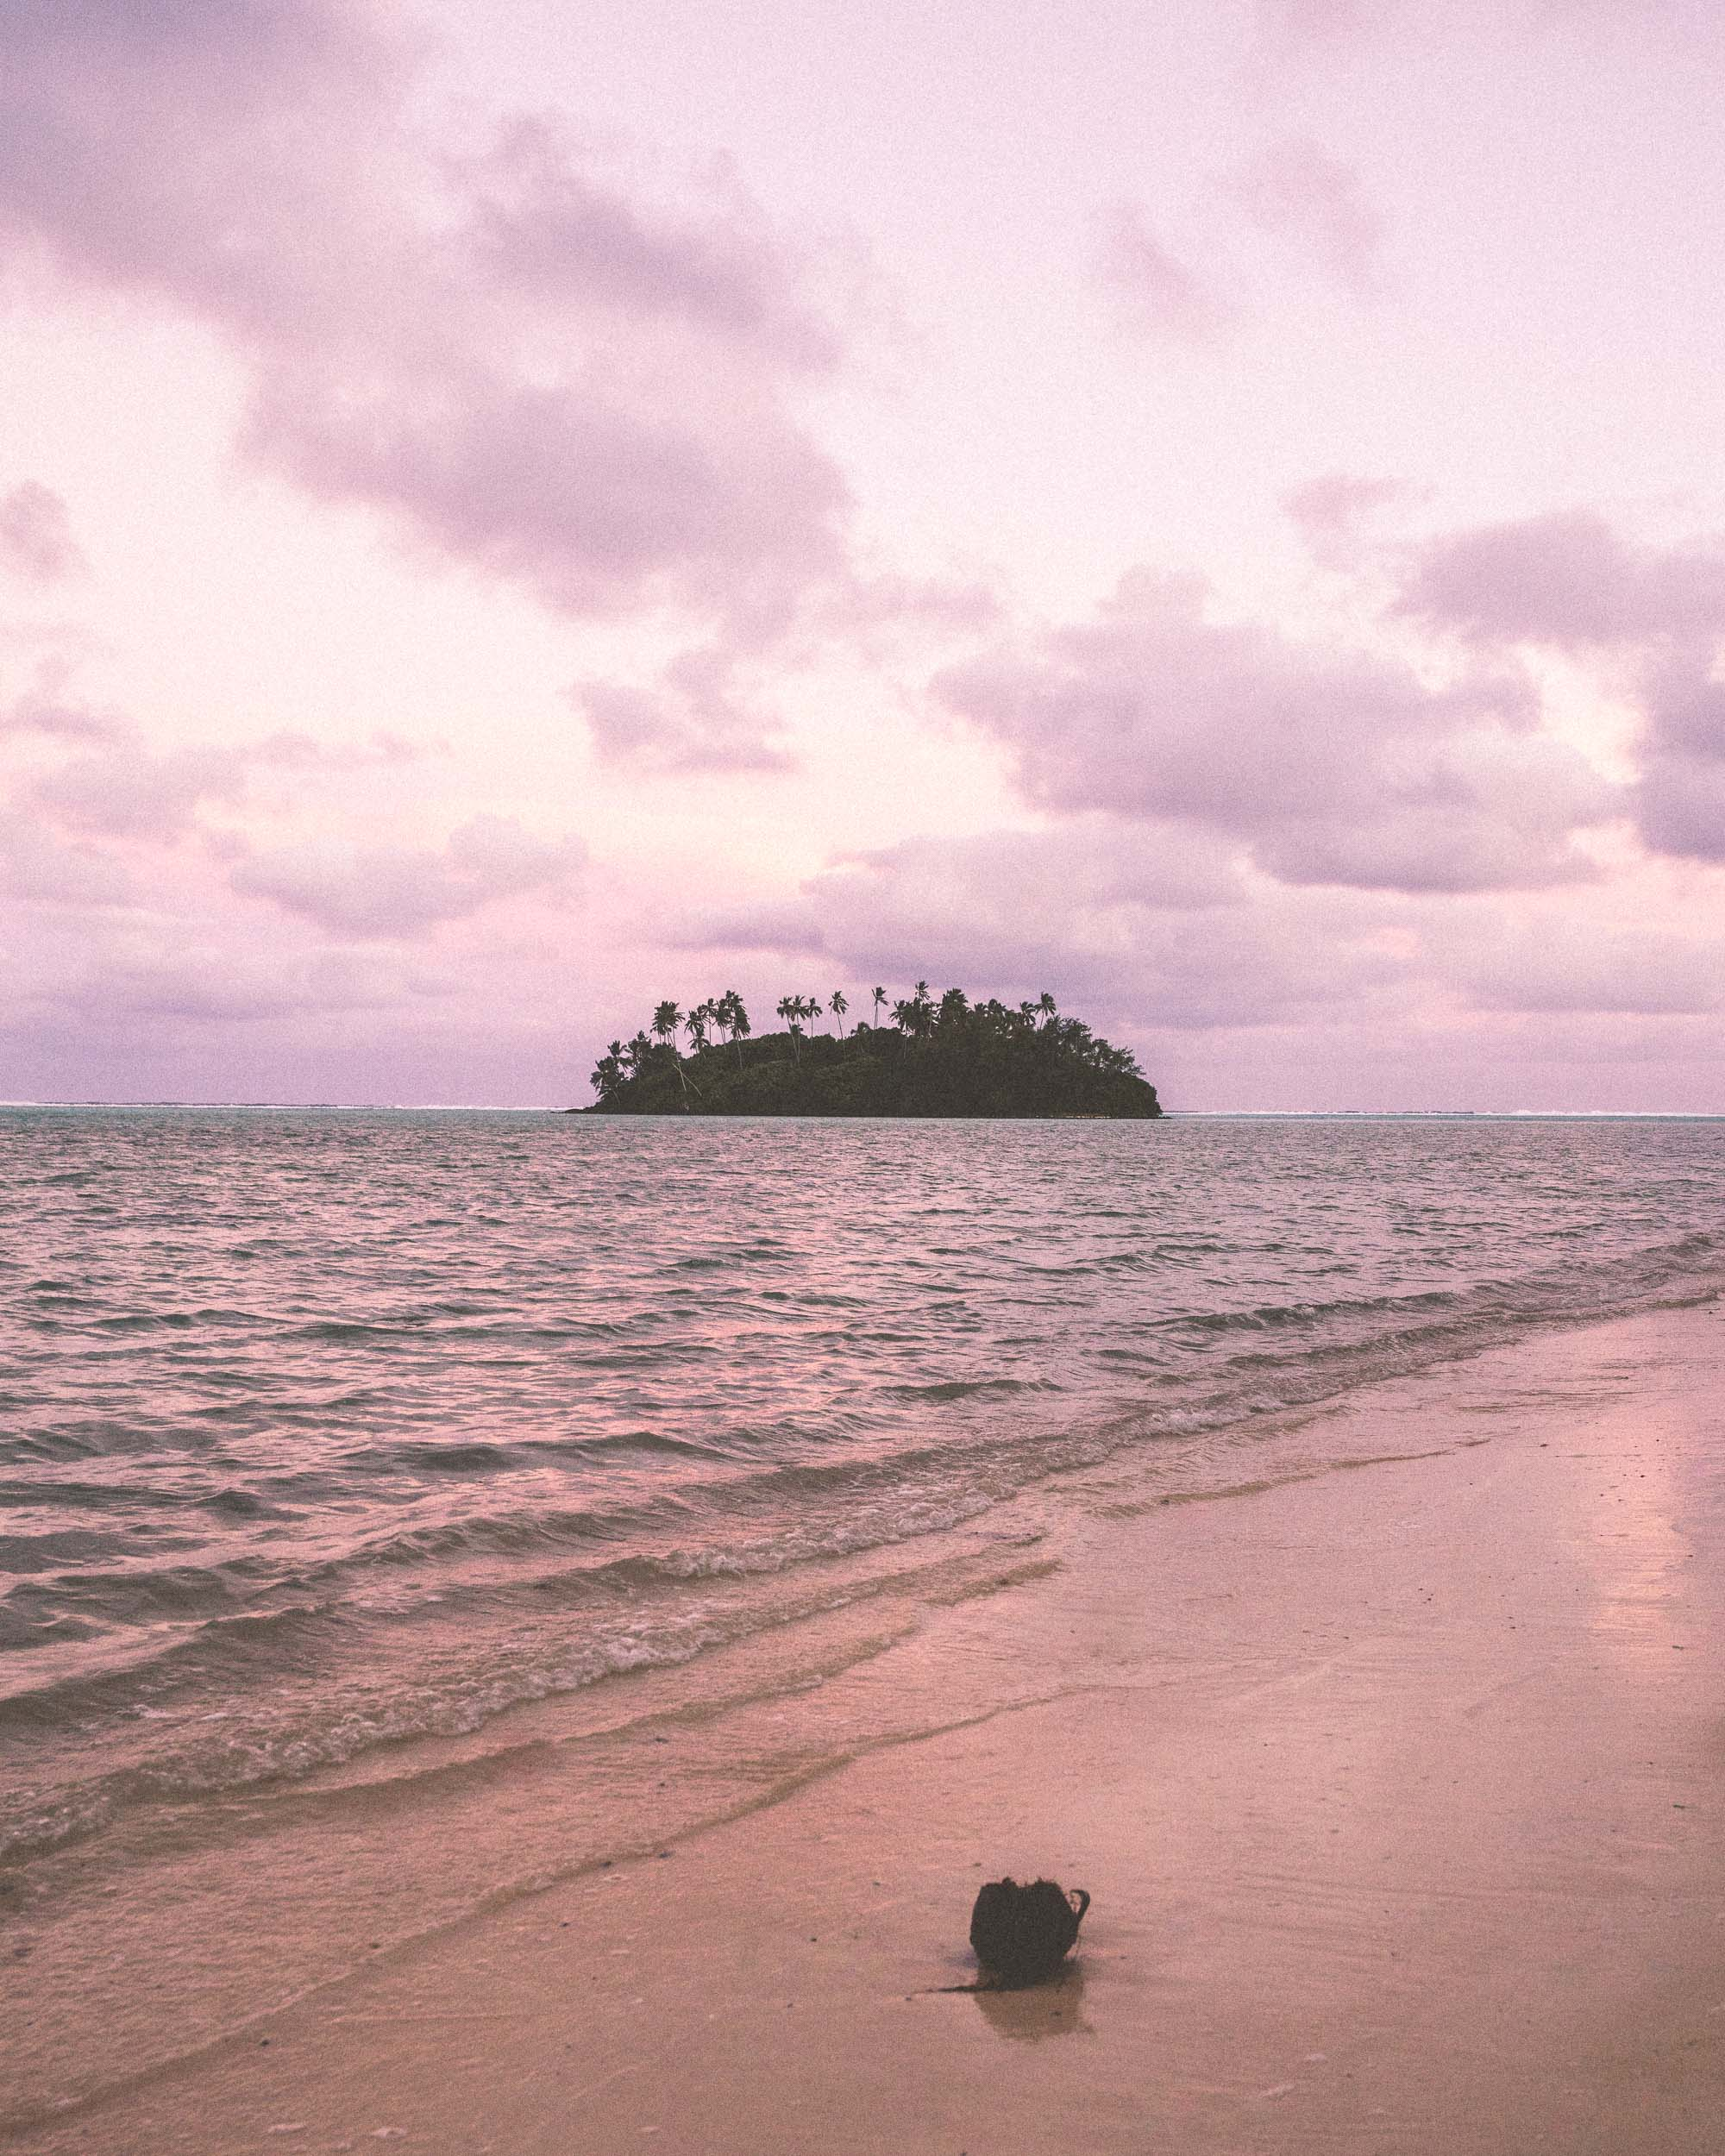 Sunset with a tropical island in the distance in Rarotonga, Cook Islands